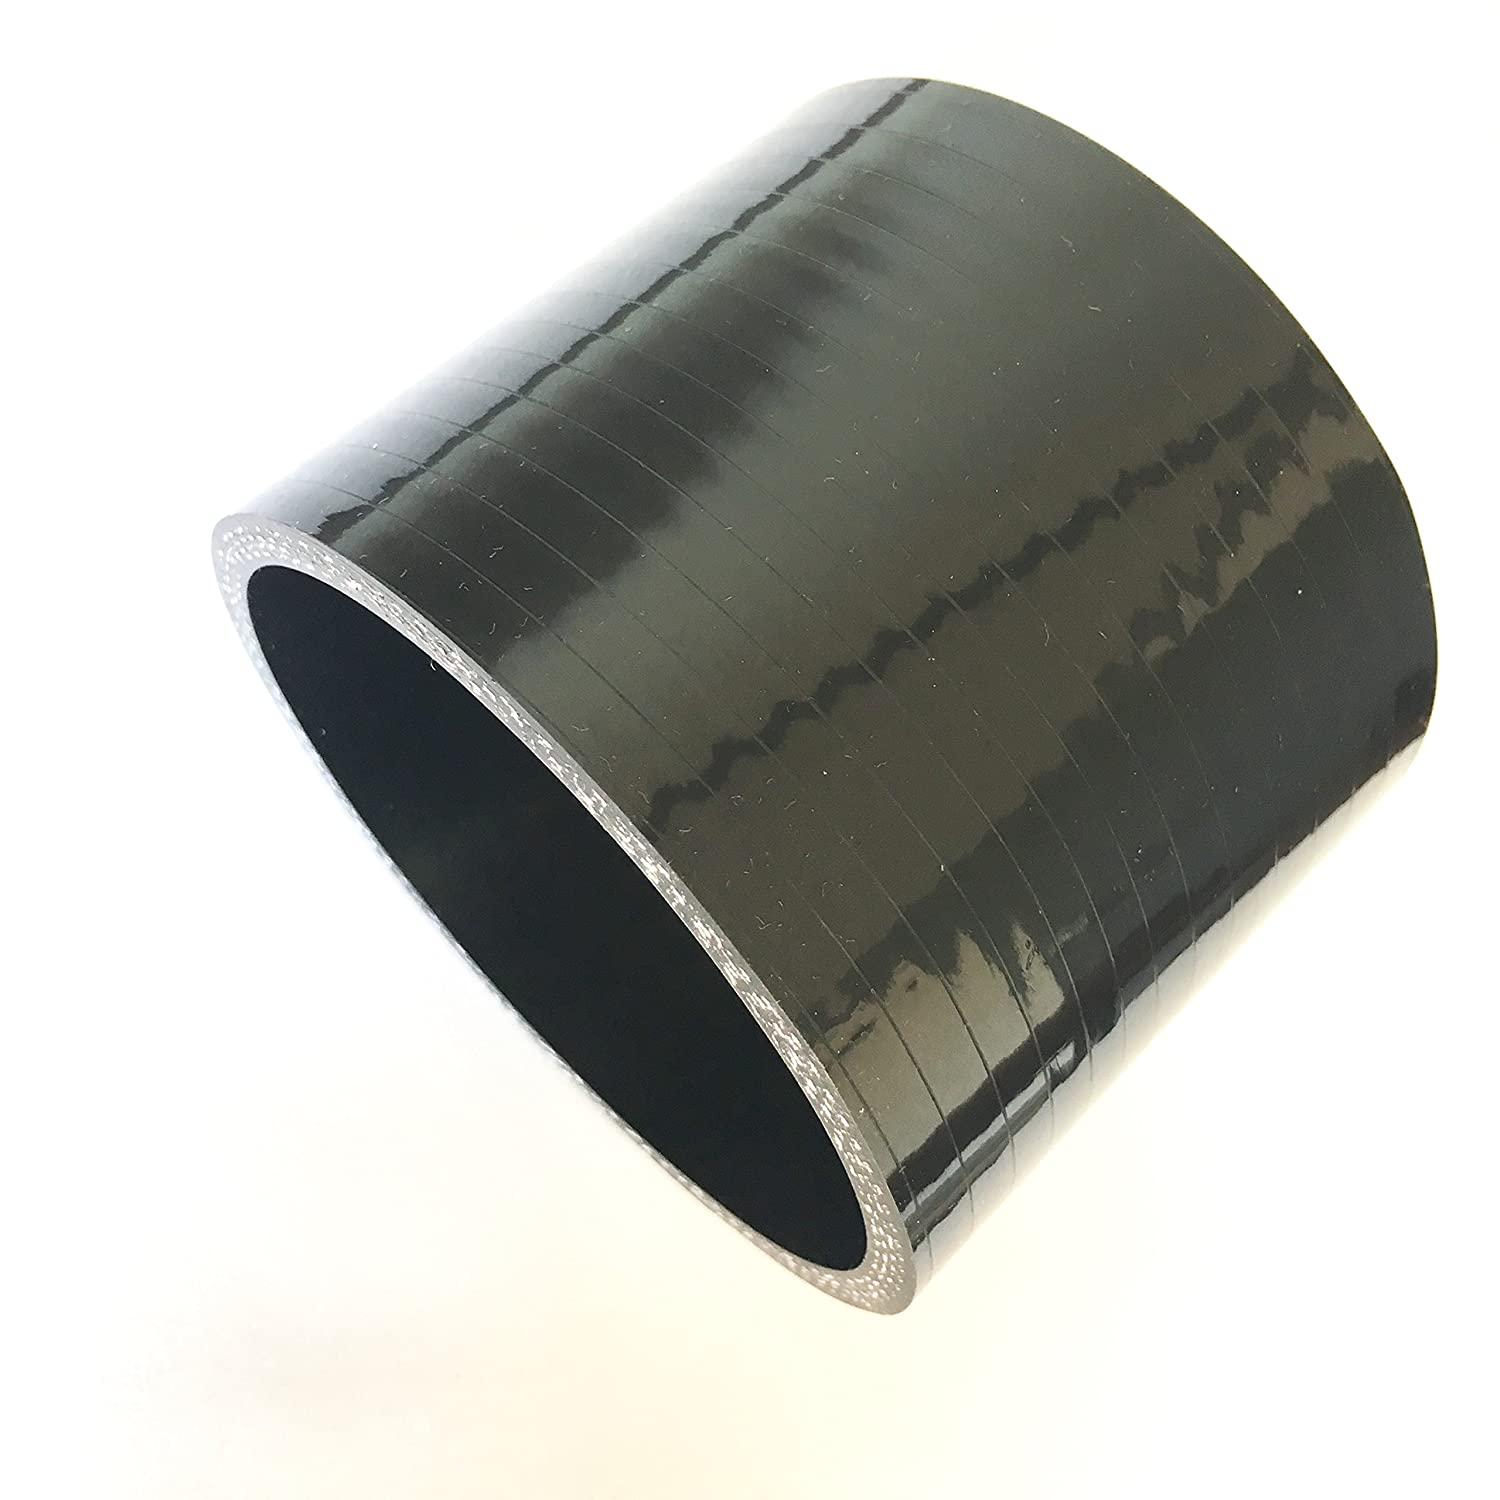 2.5 ID Straight Silicone Hose Coupler High Temp 4-Ply Reinforced Ticon Industries - 131-06303-0401 Qty 1